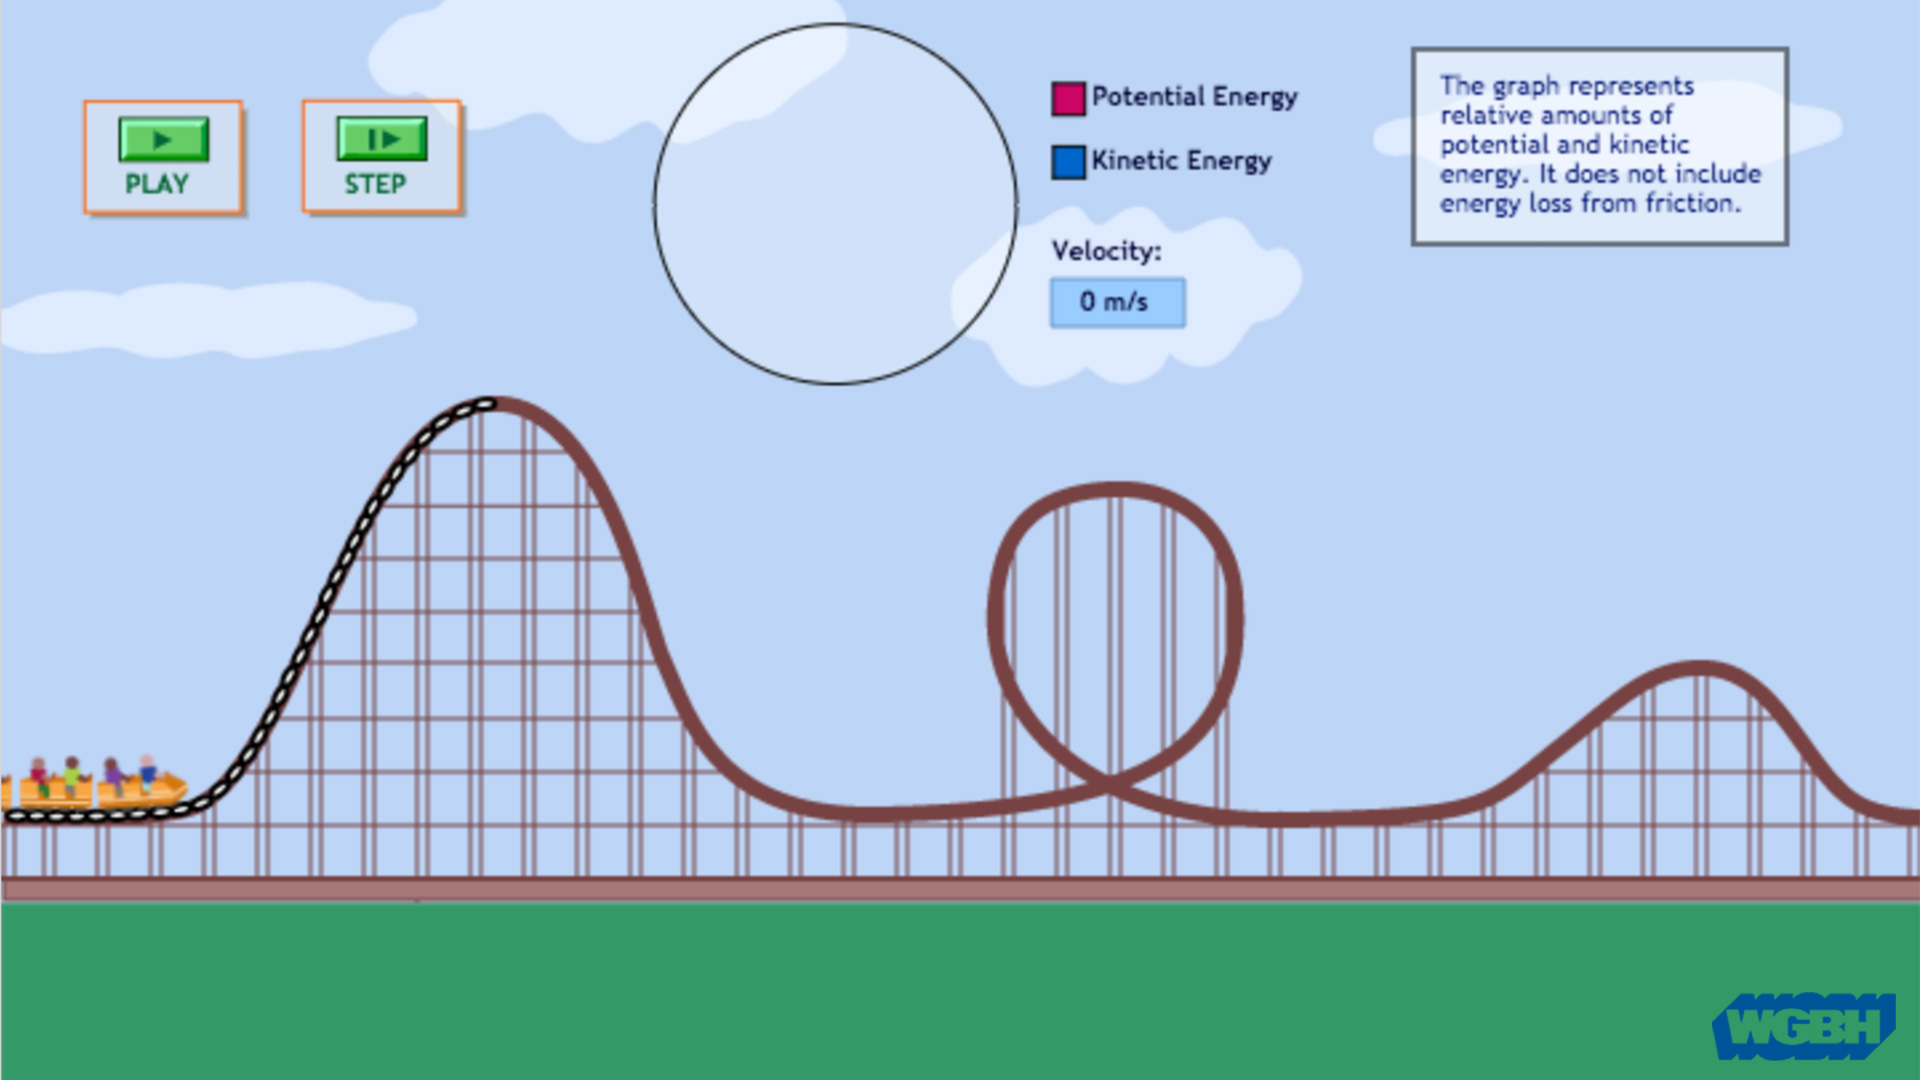 energy in a roller coaster ride azpm rh about azpm org roller coaster diagram potential kinetic energy roller coaster energy diagram